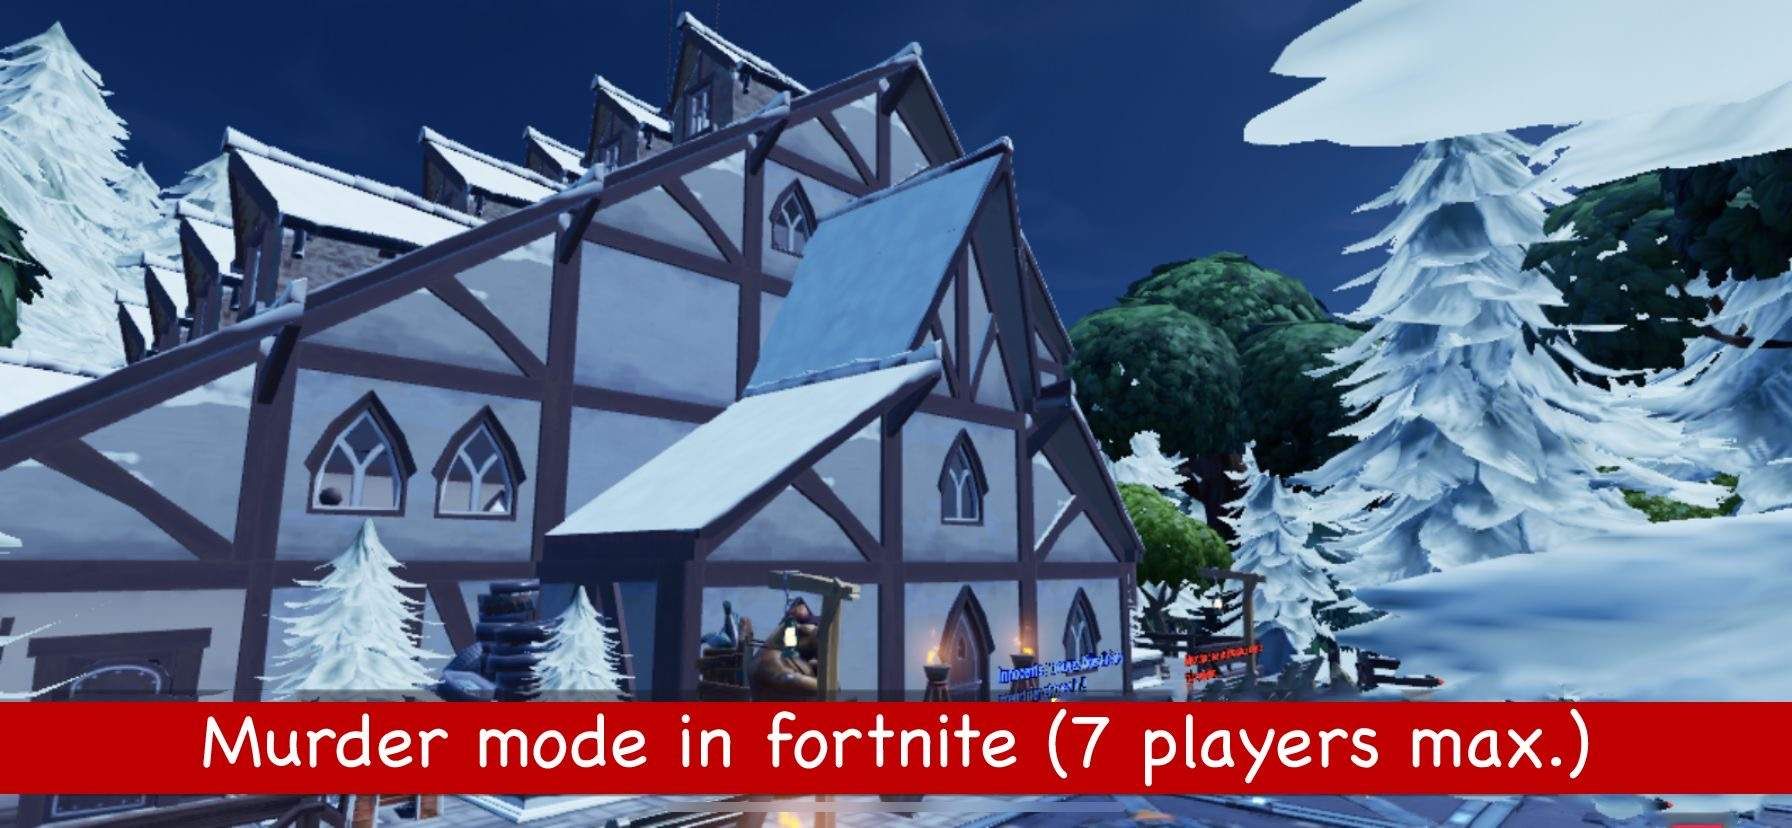 MURDER FORTNITE (7 PLAYERS MAX.)